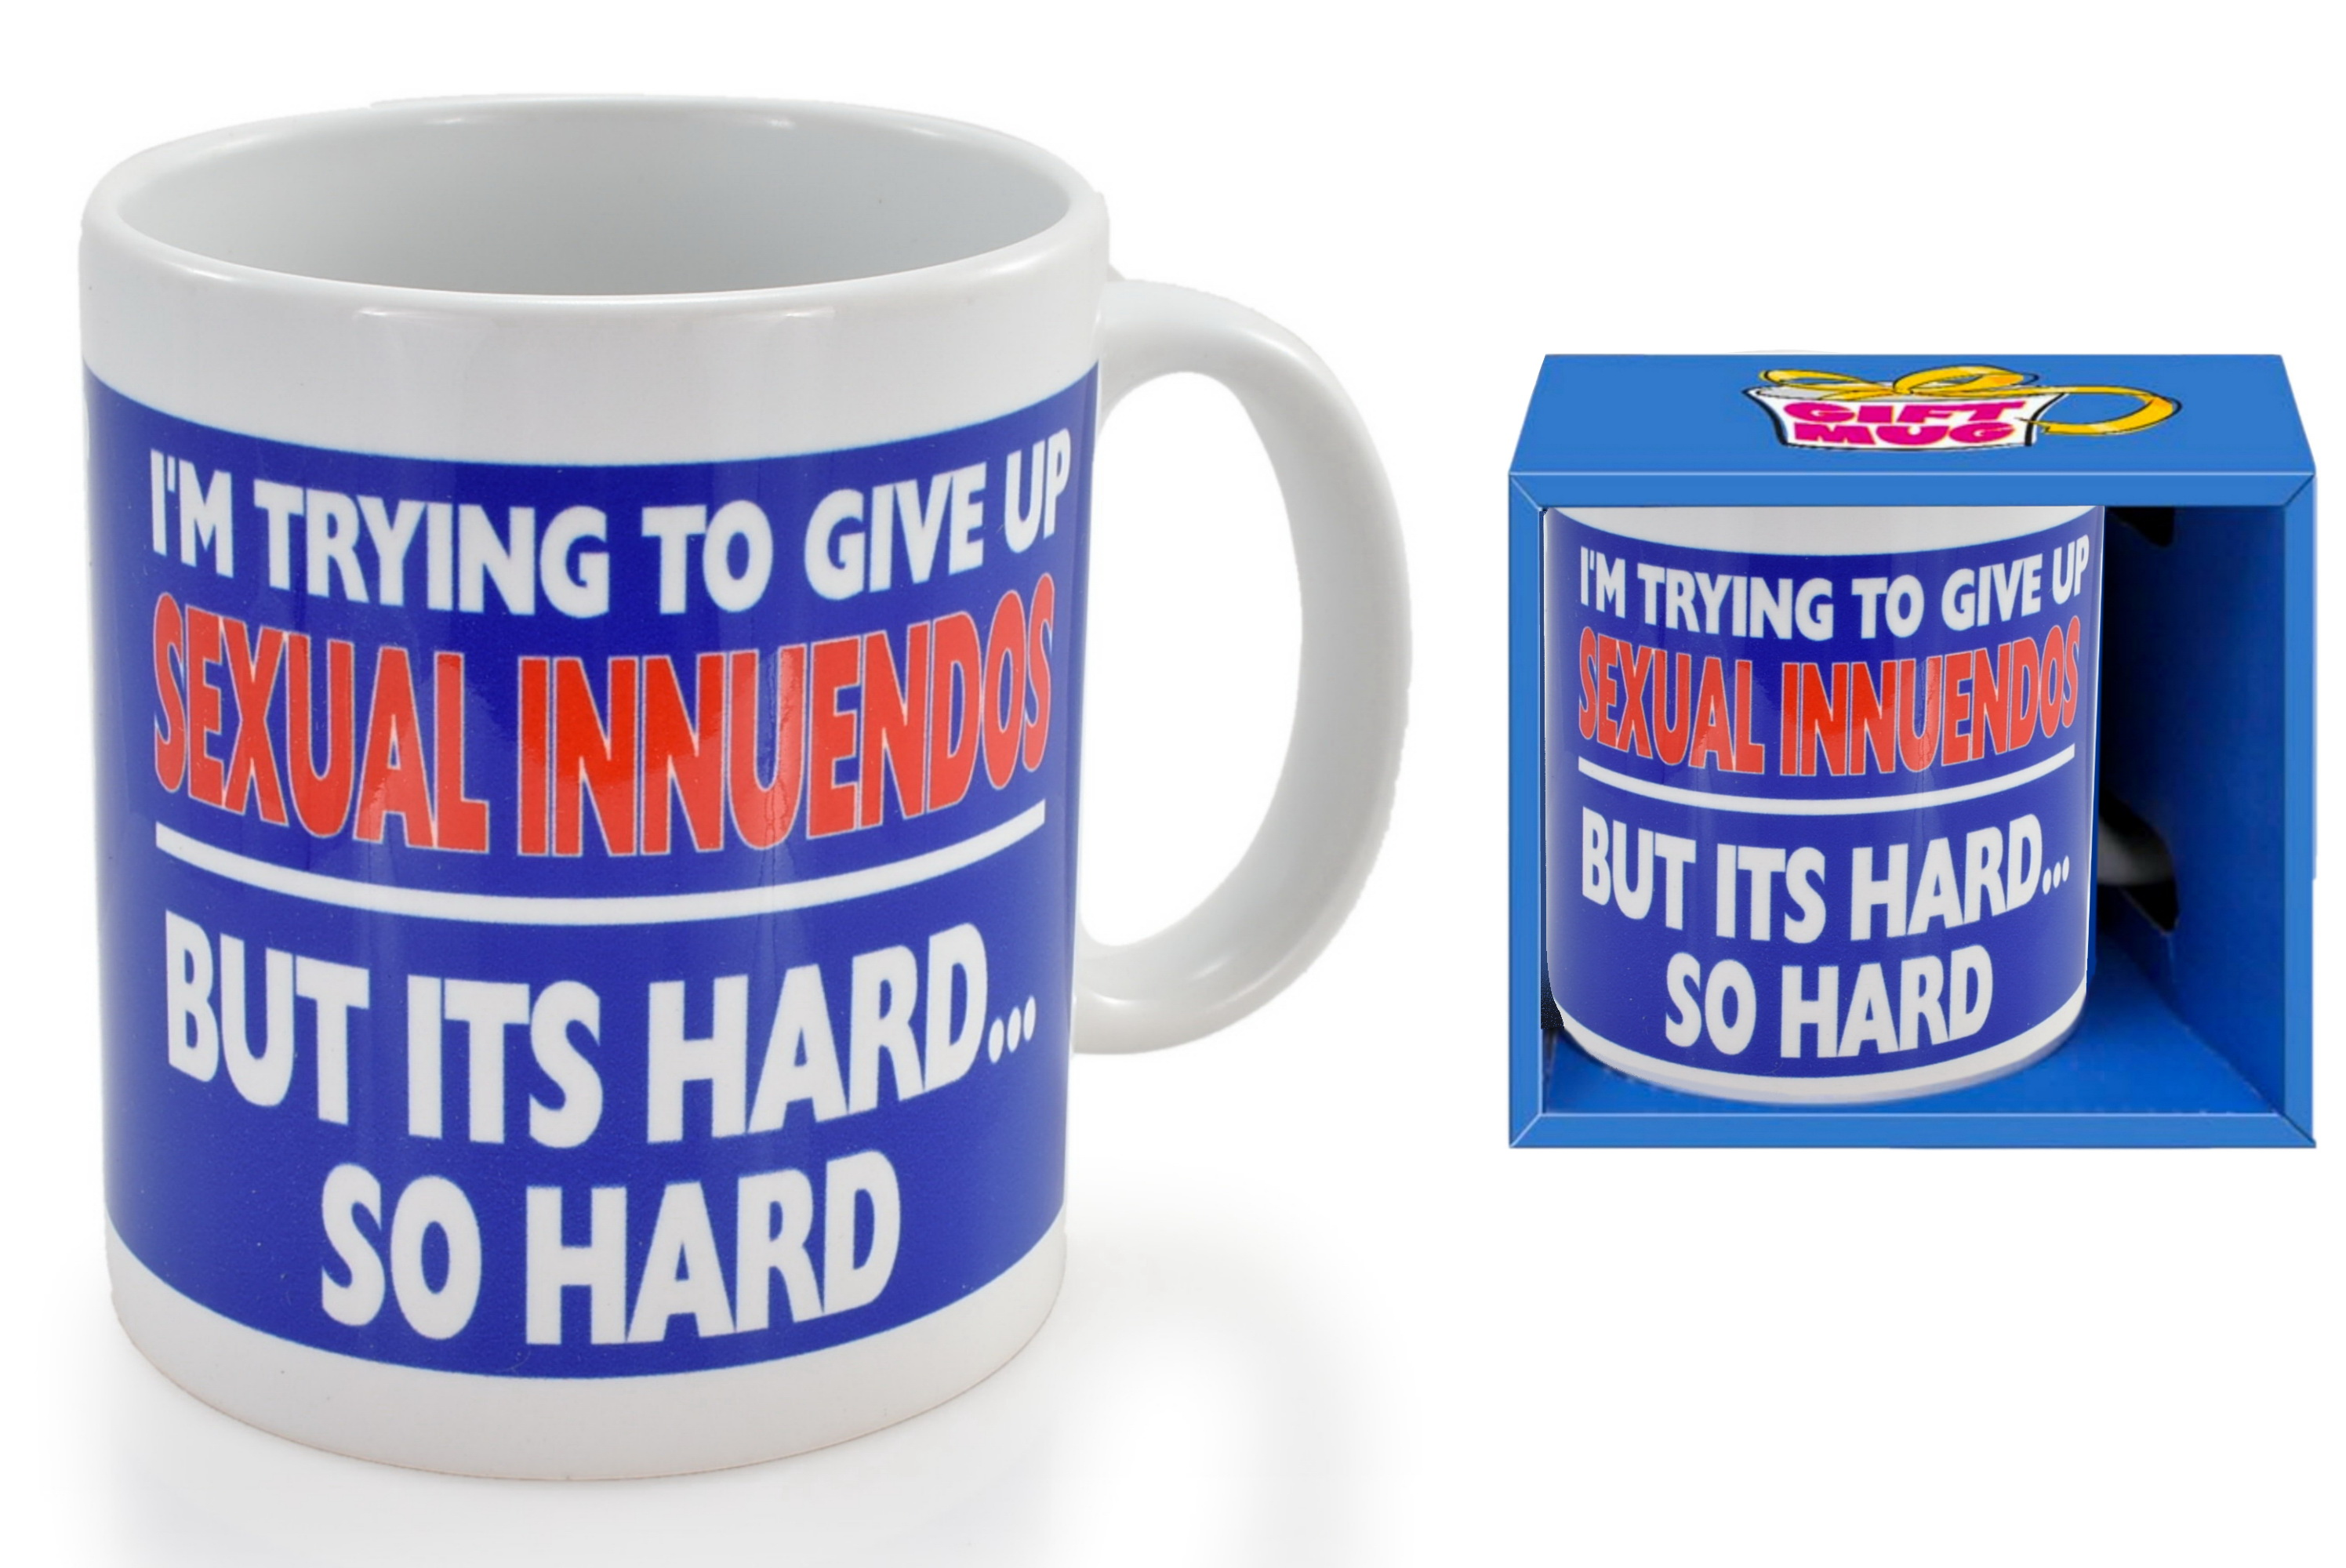 Sexual Innuendos Mug In Gift Box